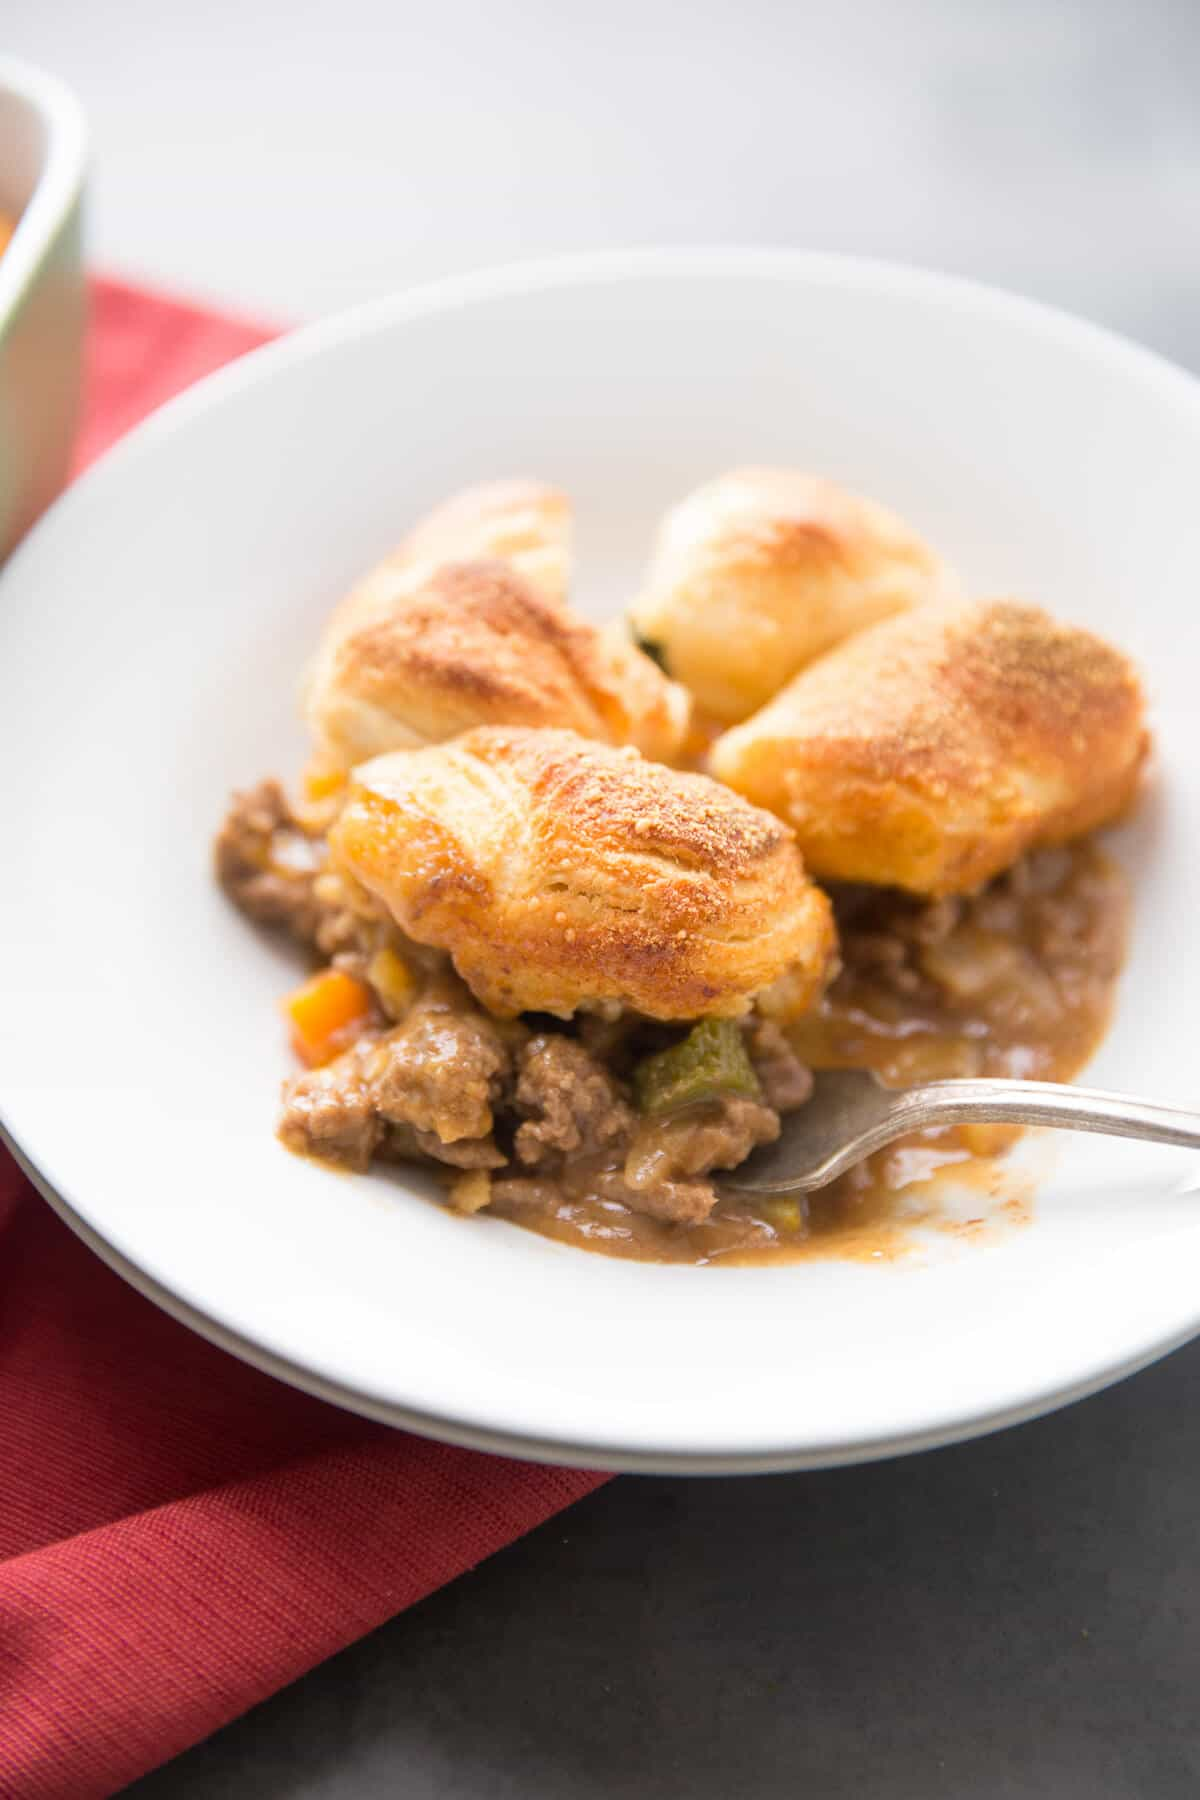 Love cheeseburgers? Then you will be over the moon about this cheeseburger pot pie!